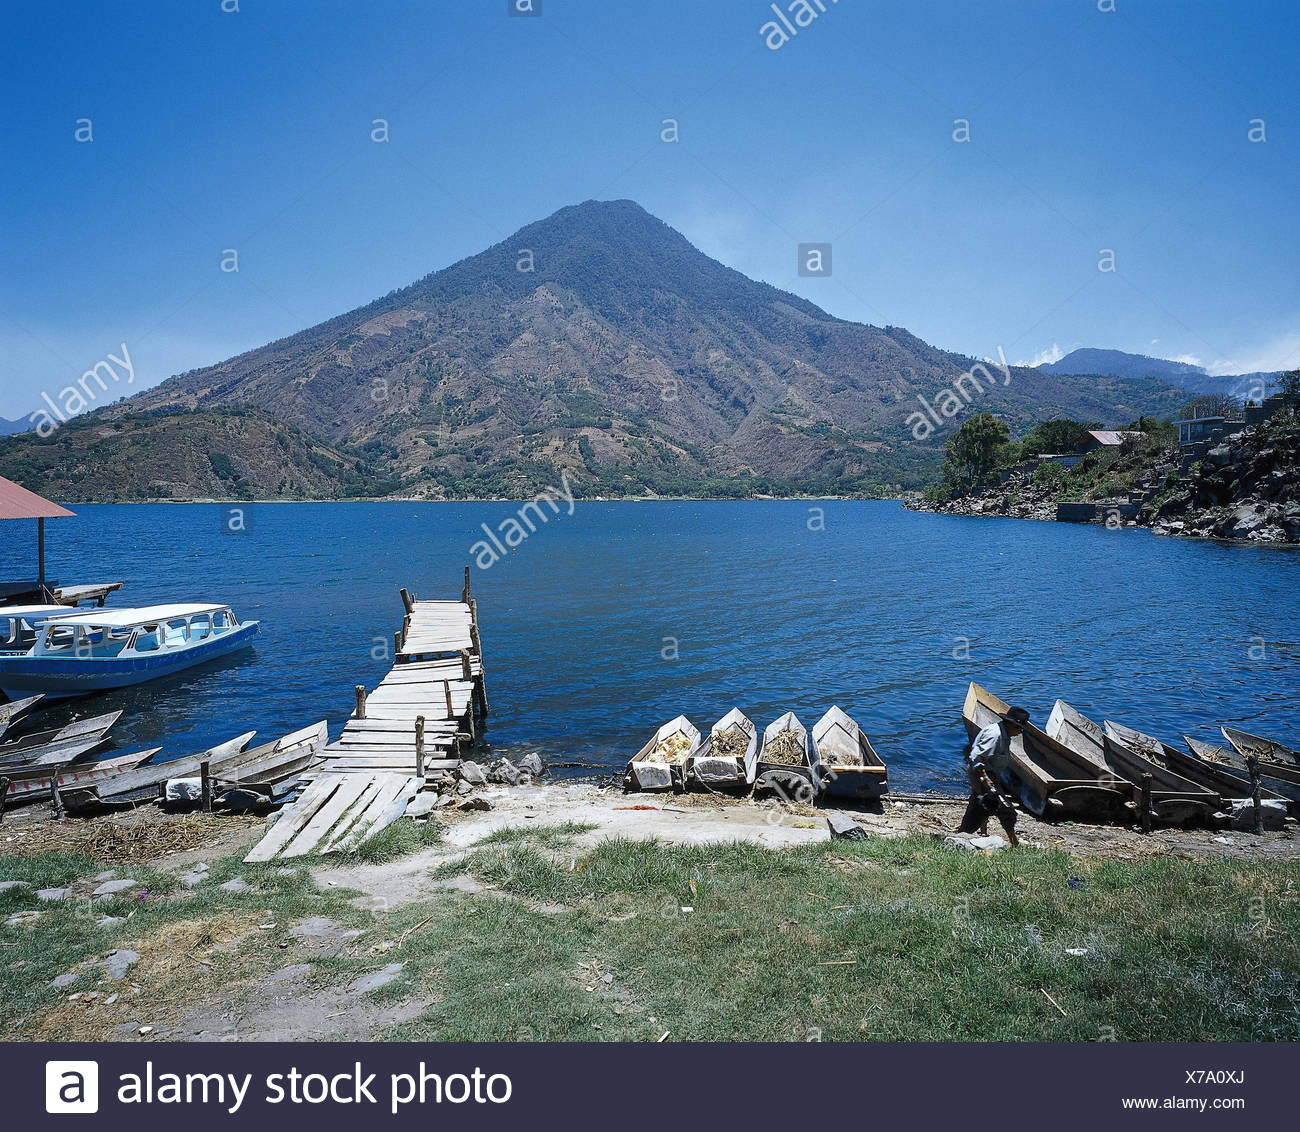 Guatemala, Atitlansee, Santiago, Atitlan, shore, fishing boats, volcano San Pedro Lateinamerika, highland region, Lago de Atitlan, lake, waters, mountain lake, shore, bridge, boots, mountain, volcano cone - Stock Image